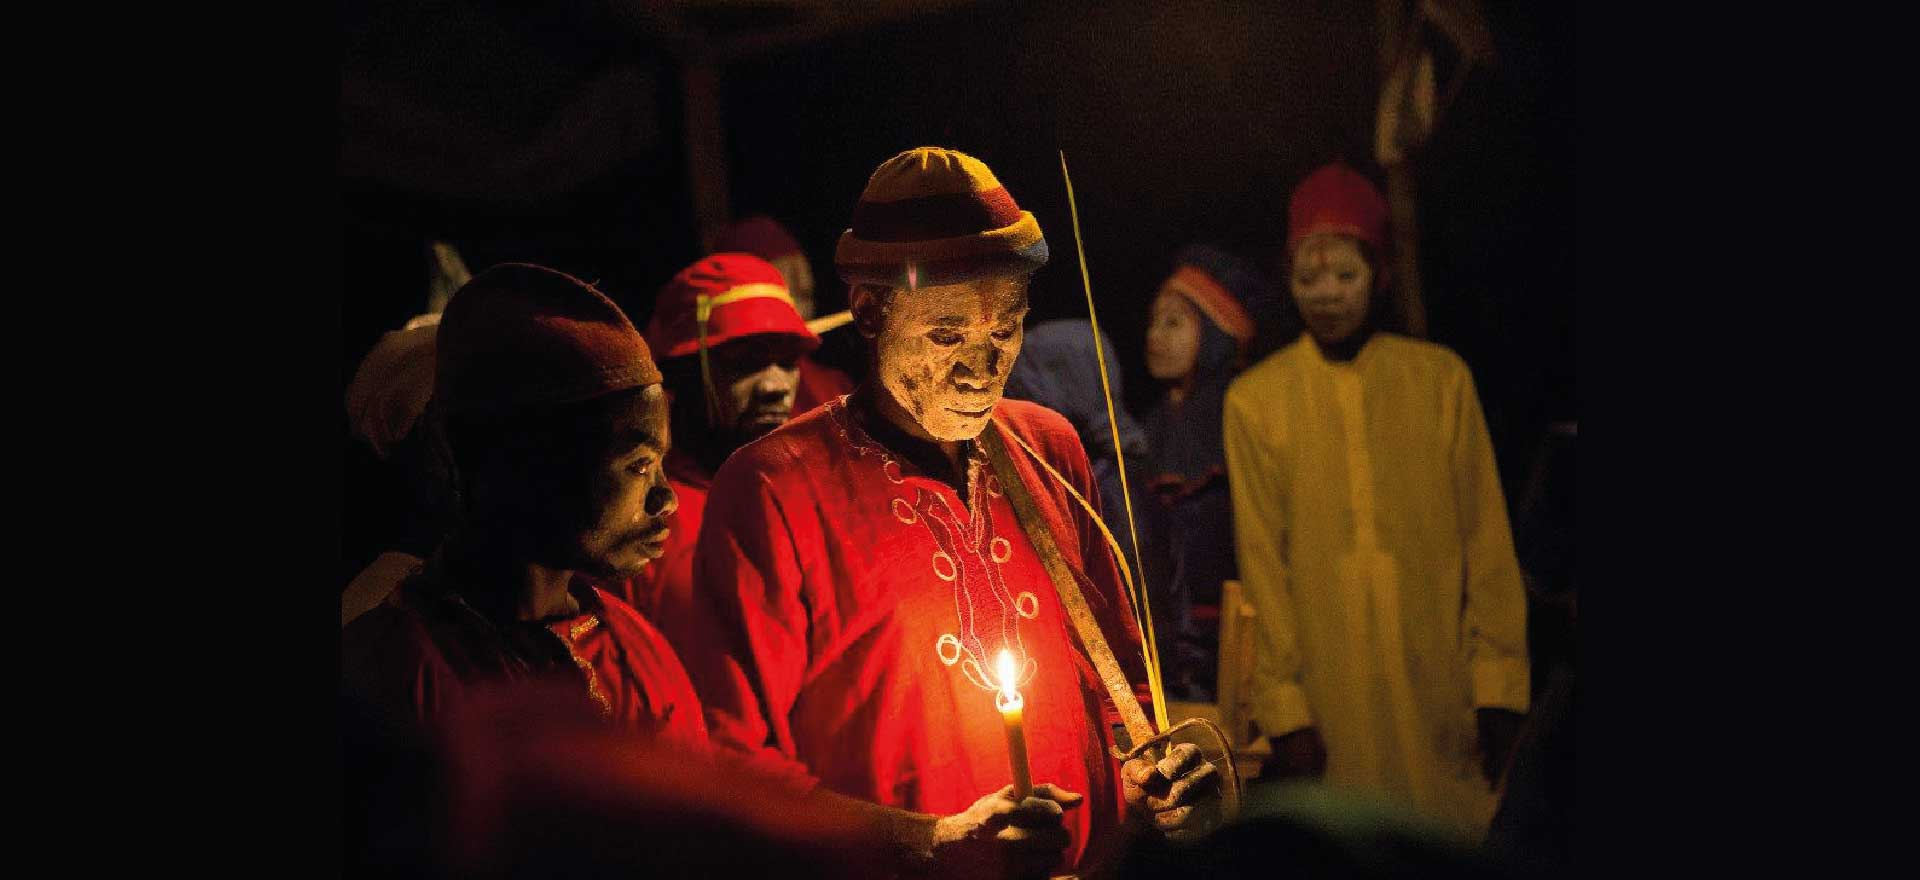 Native Eye Travel - Cameroon - Bwiti ceremony